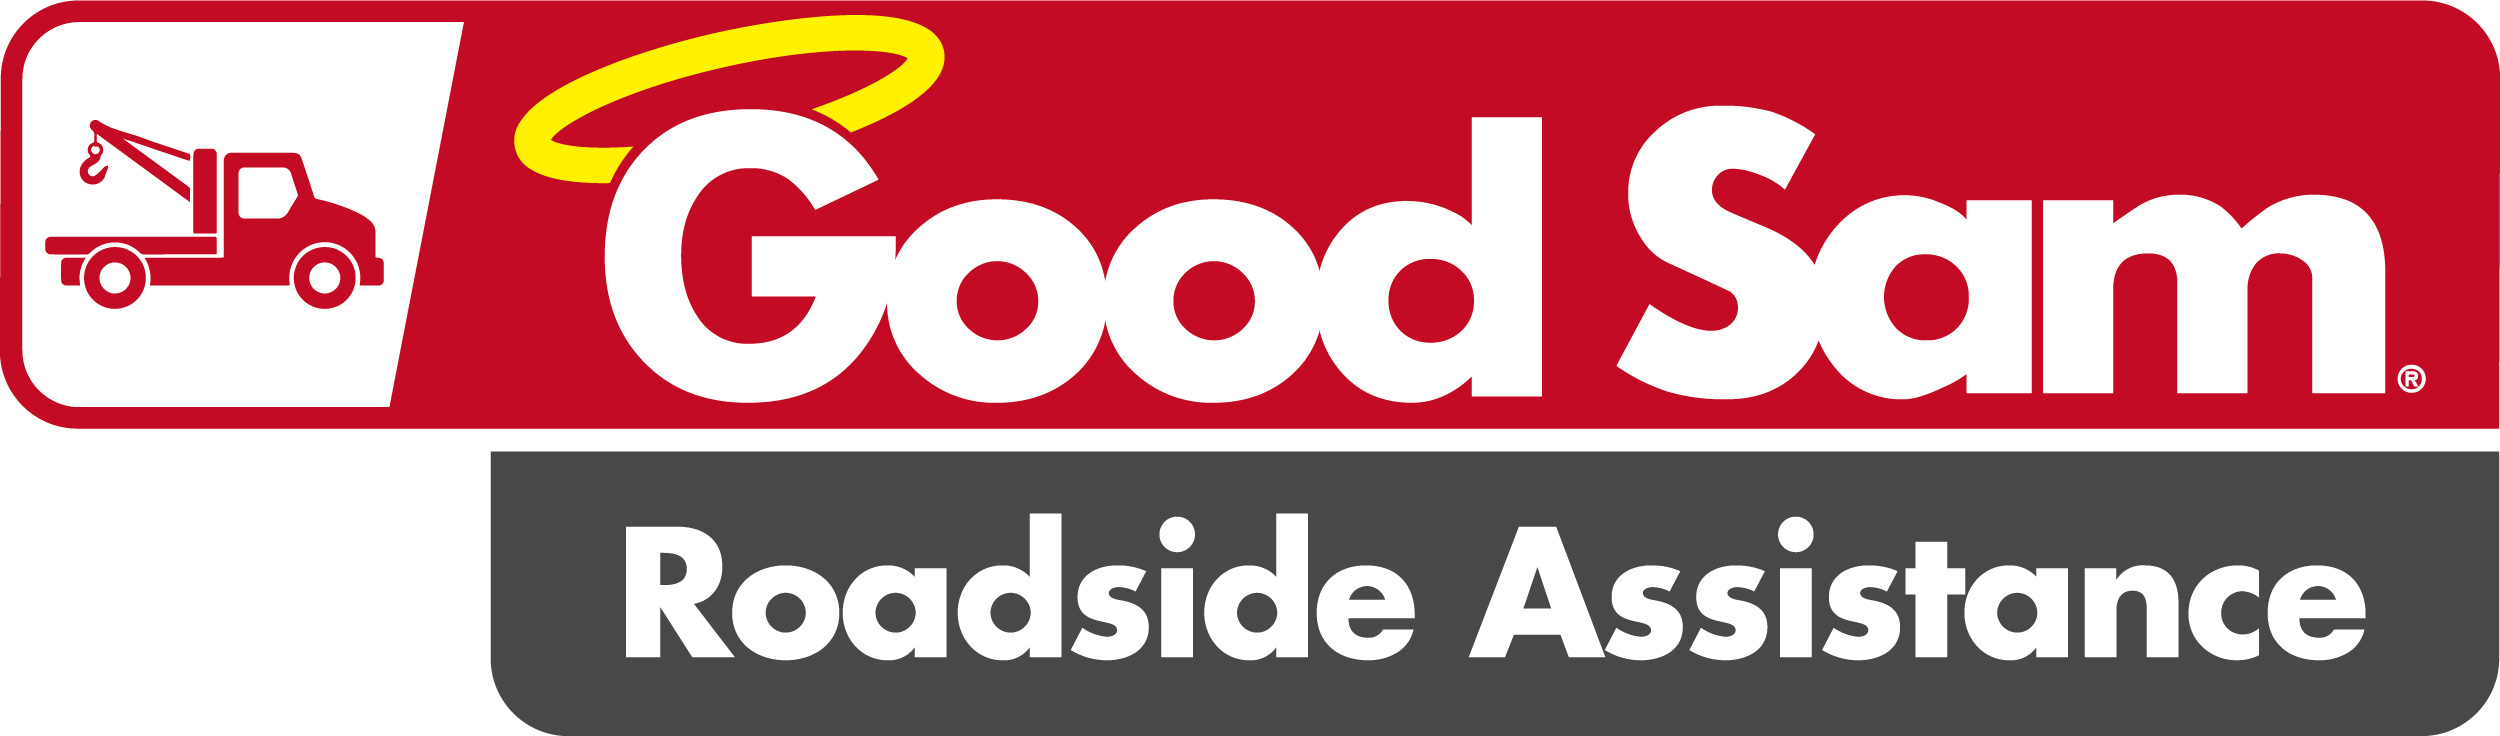 Good Sam Roadside Assistance affiliate program